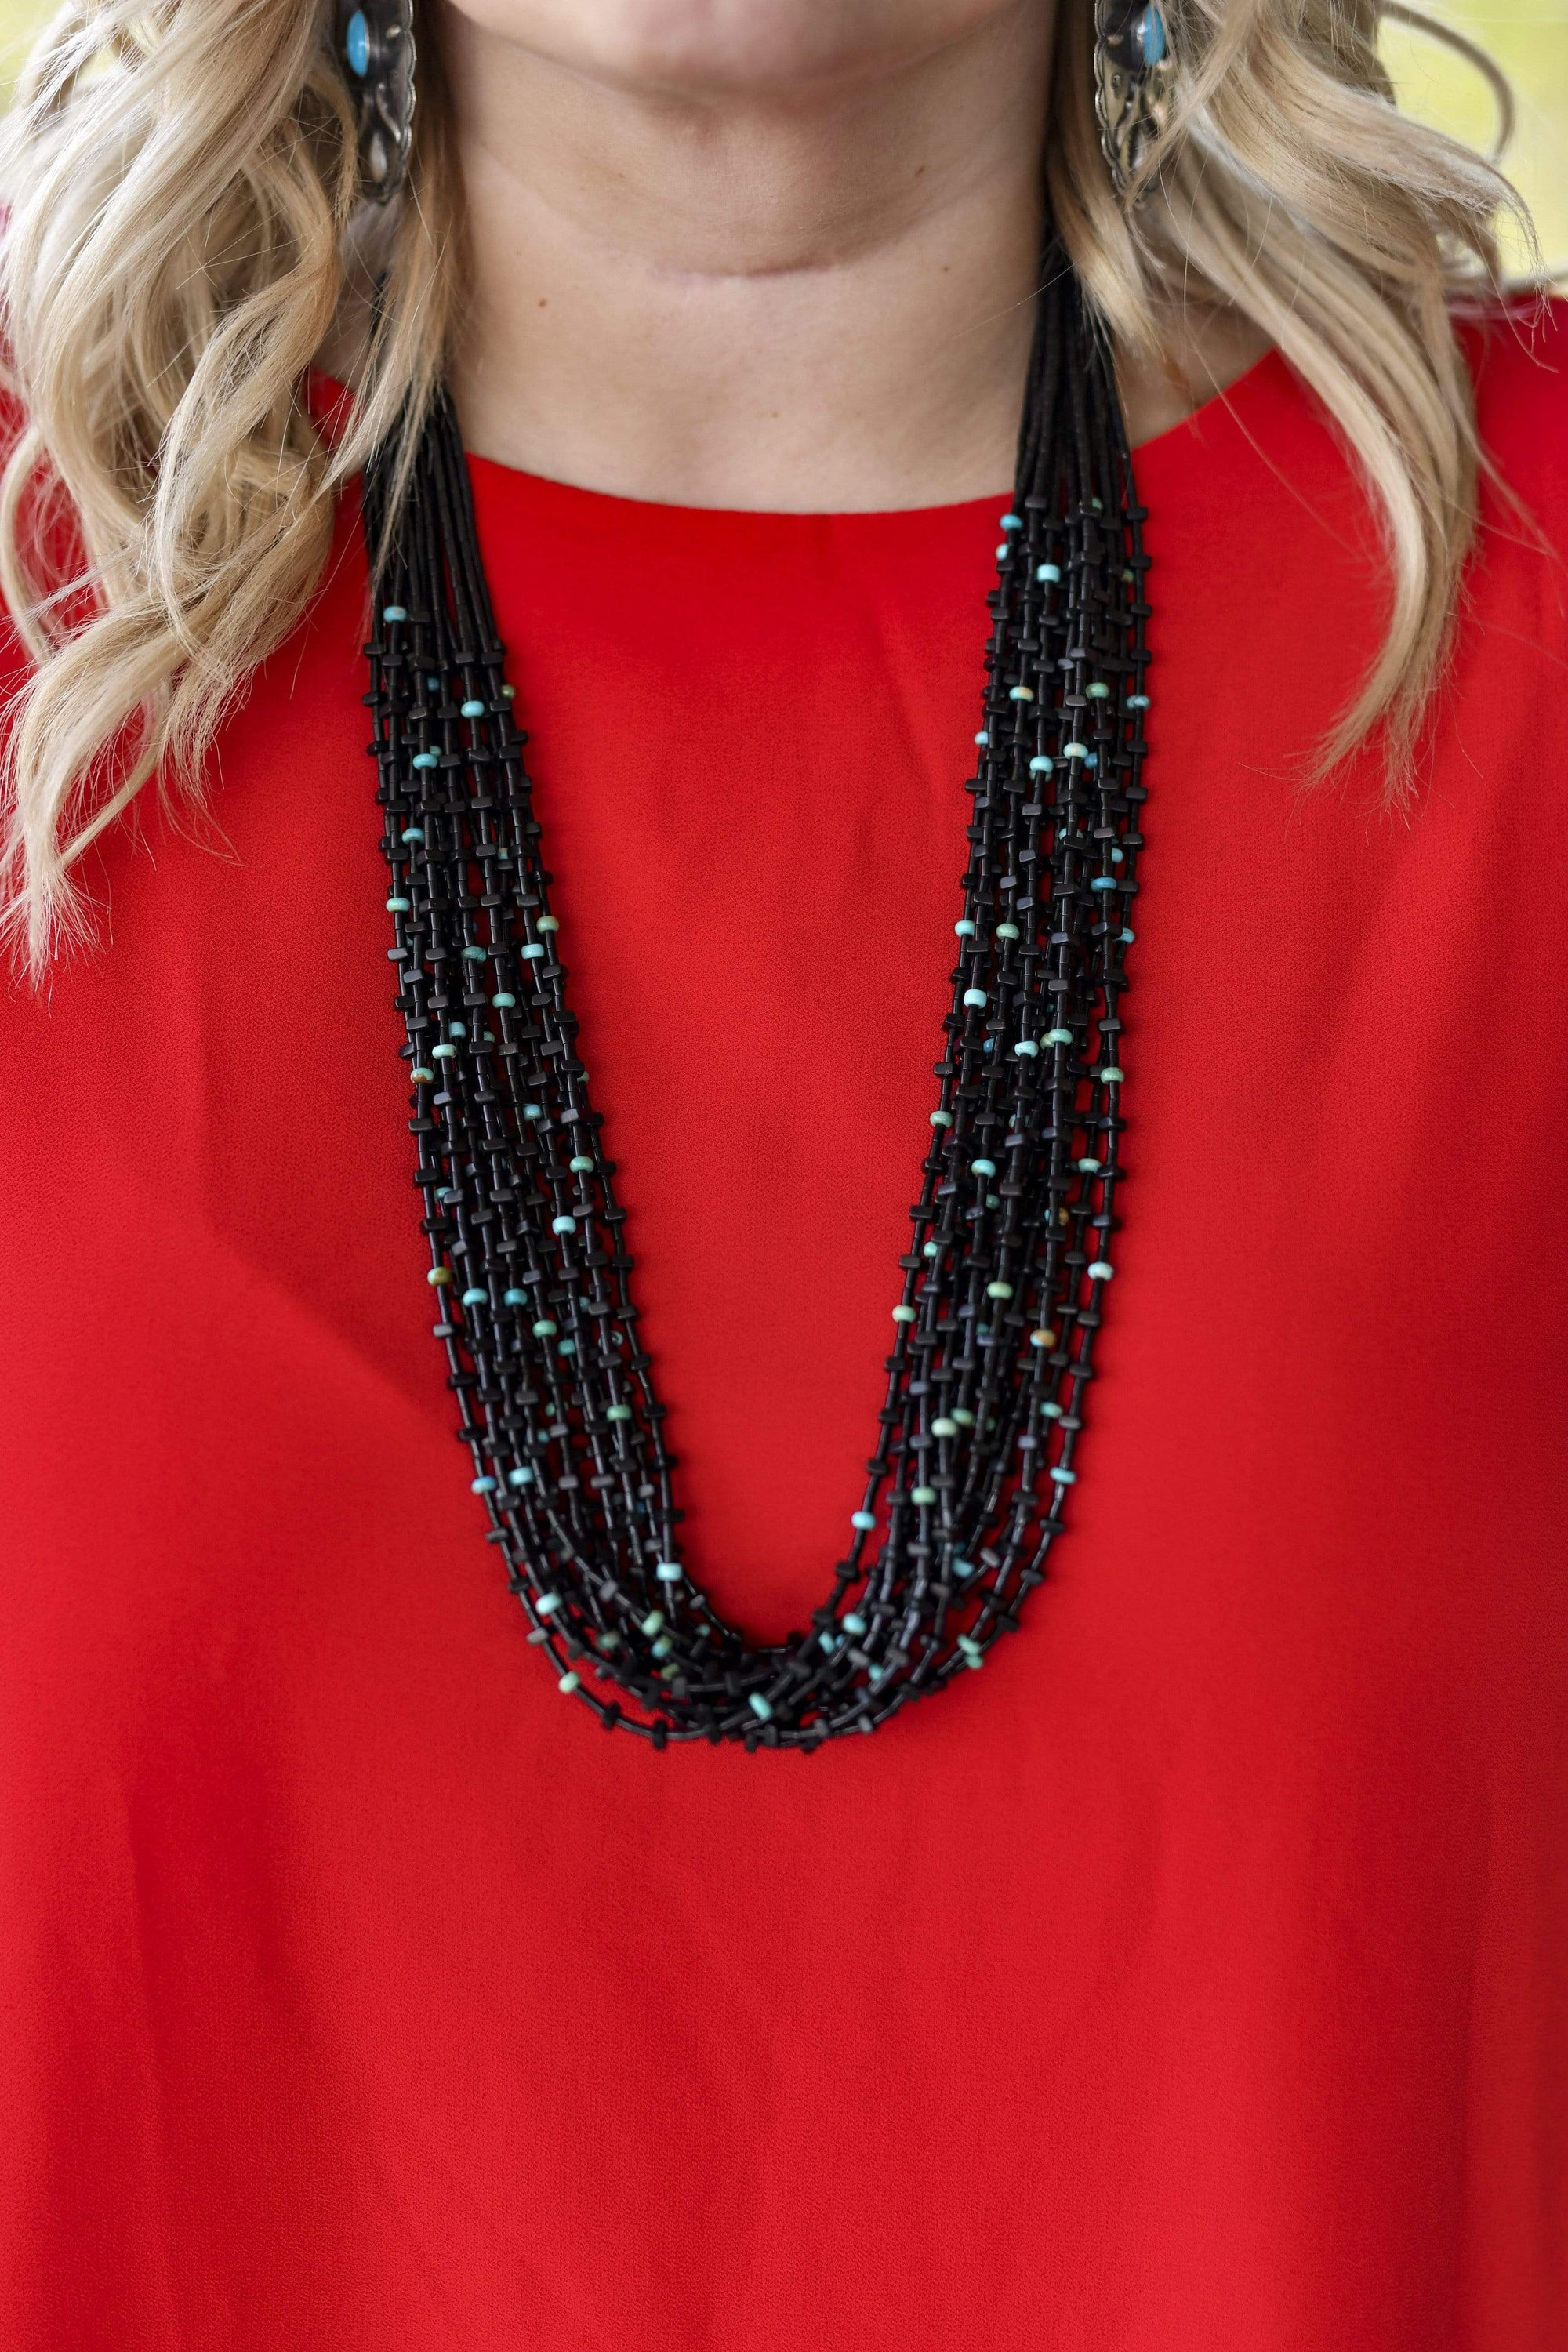 15 Strand Black & Turquoise Heishi Necklace